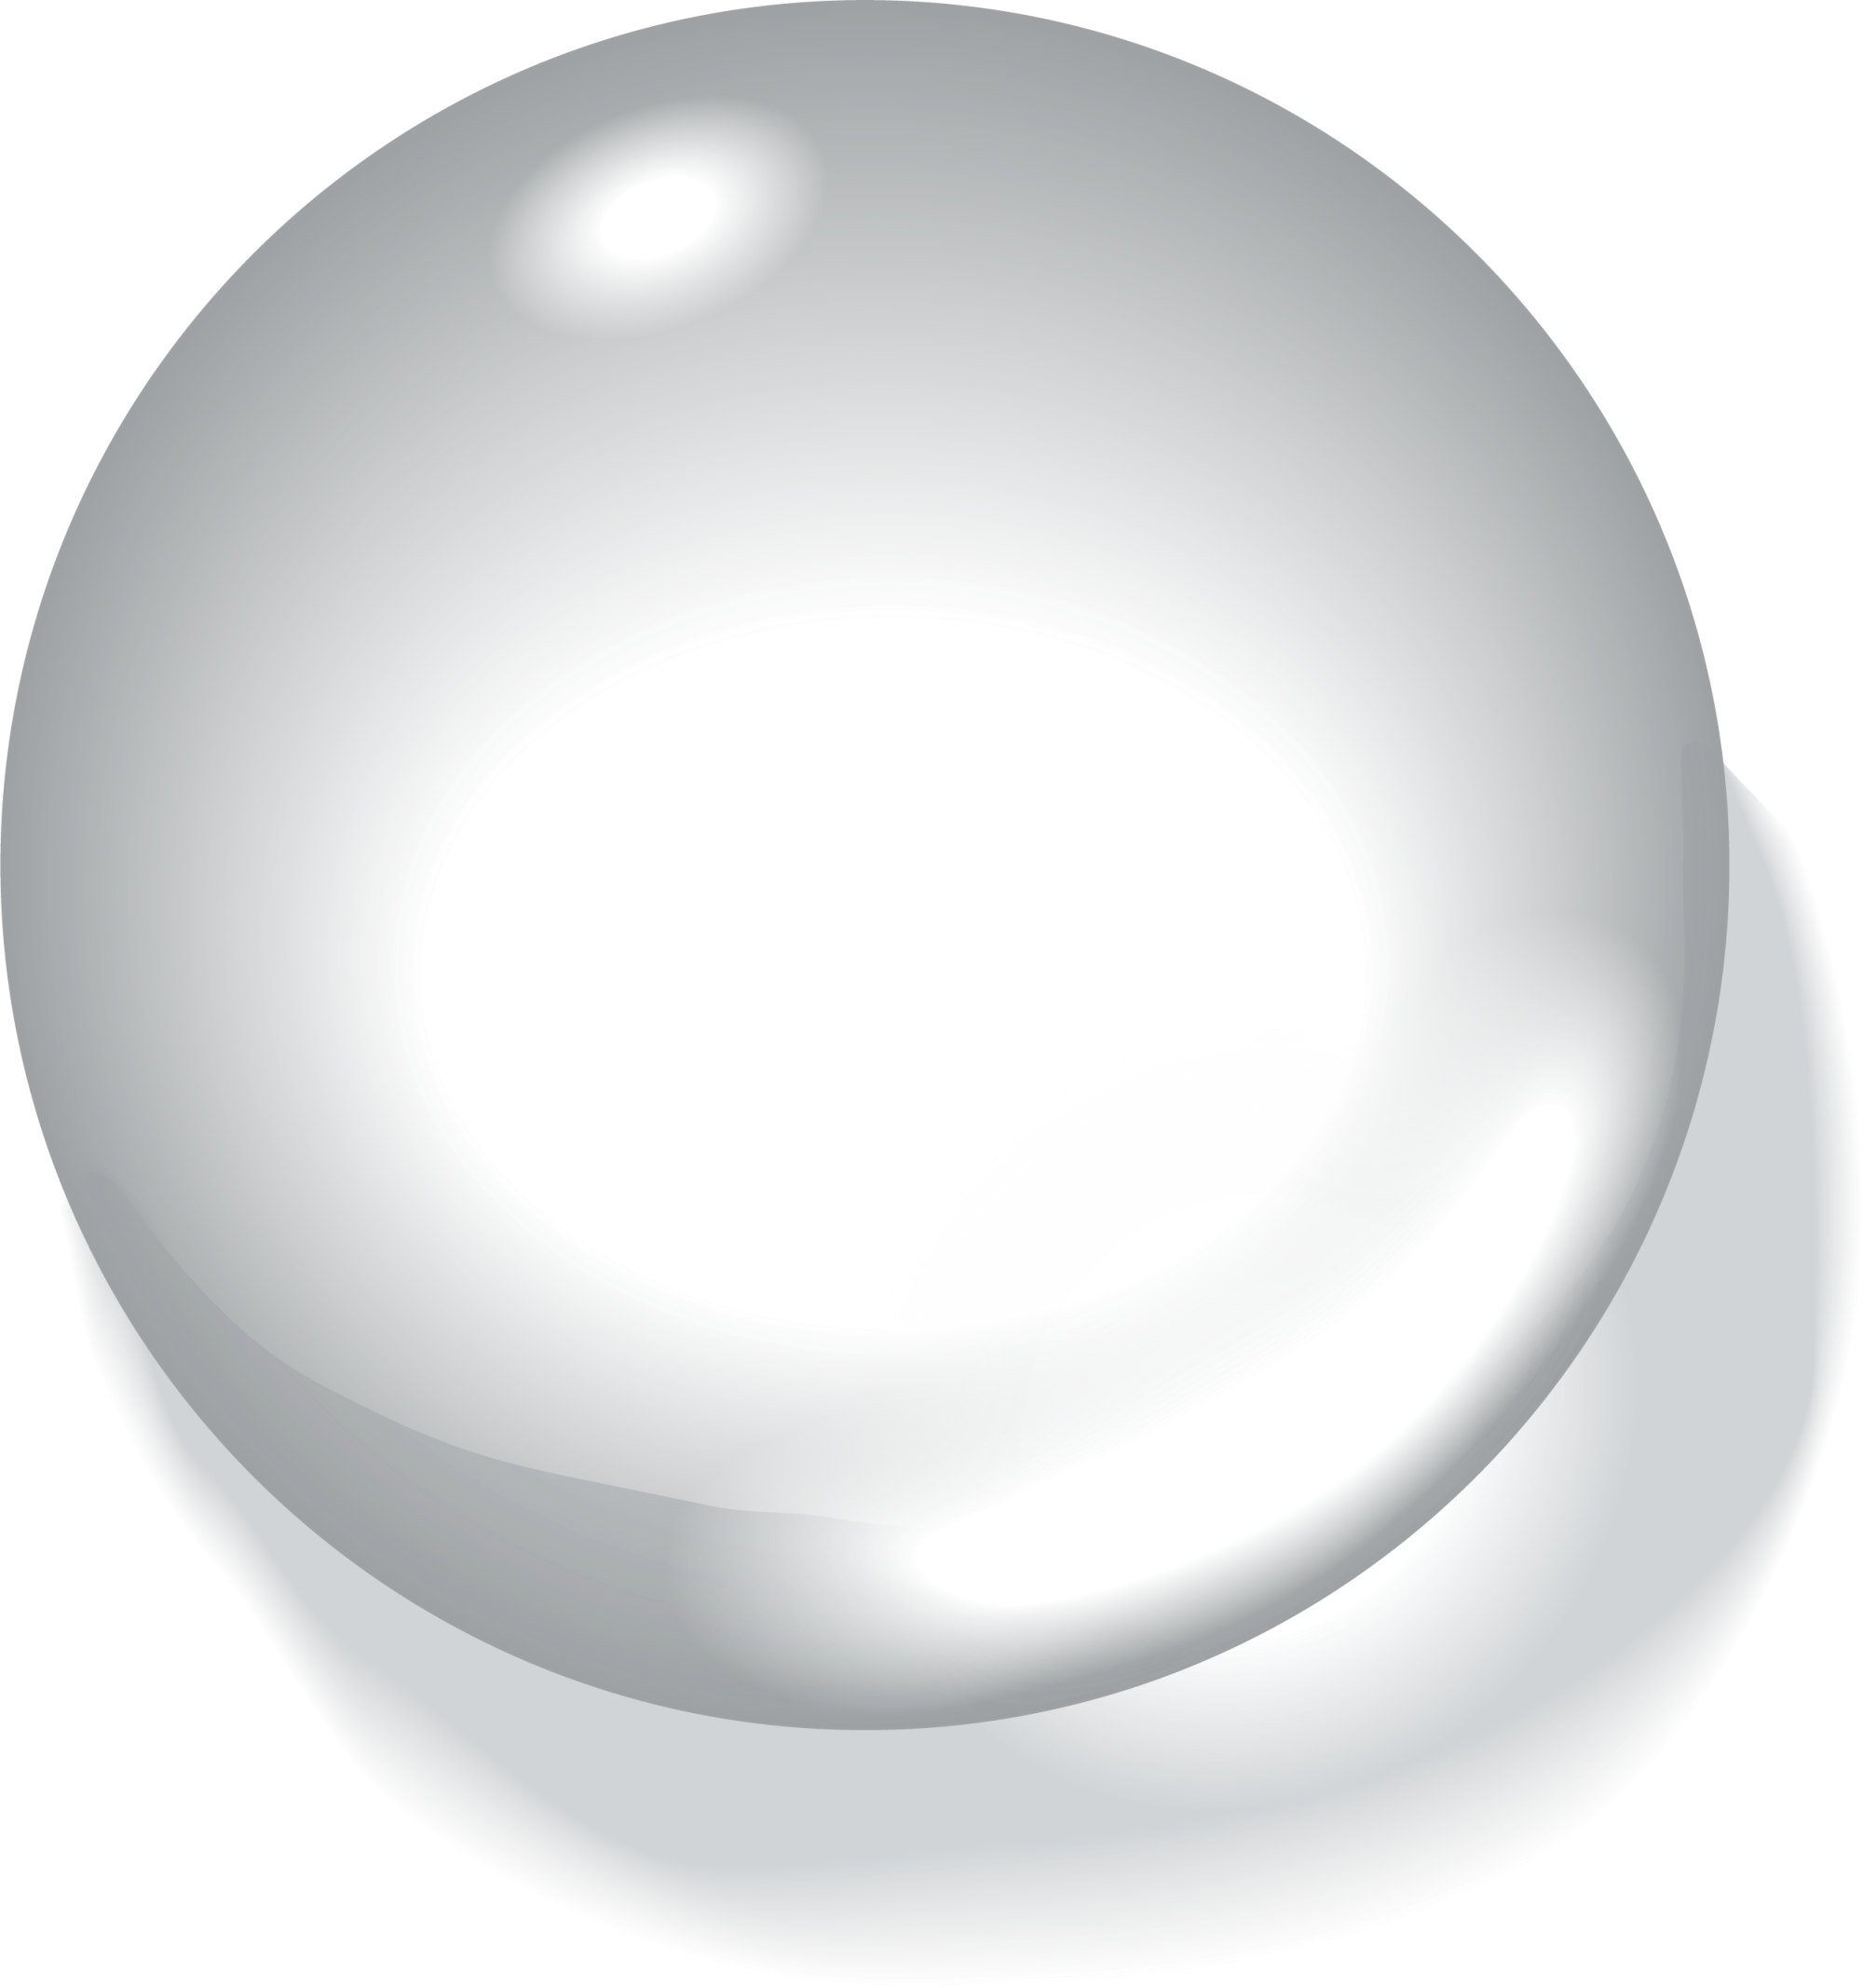 Oval Sphere White Drop Free Frame PNG Image